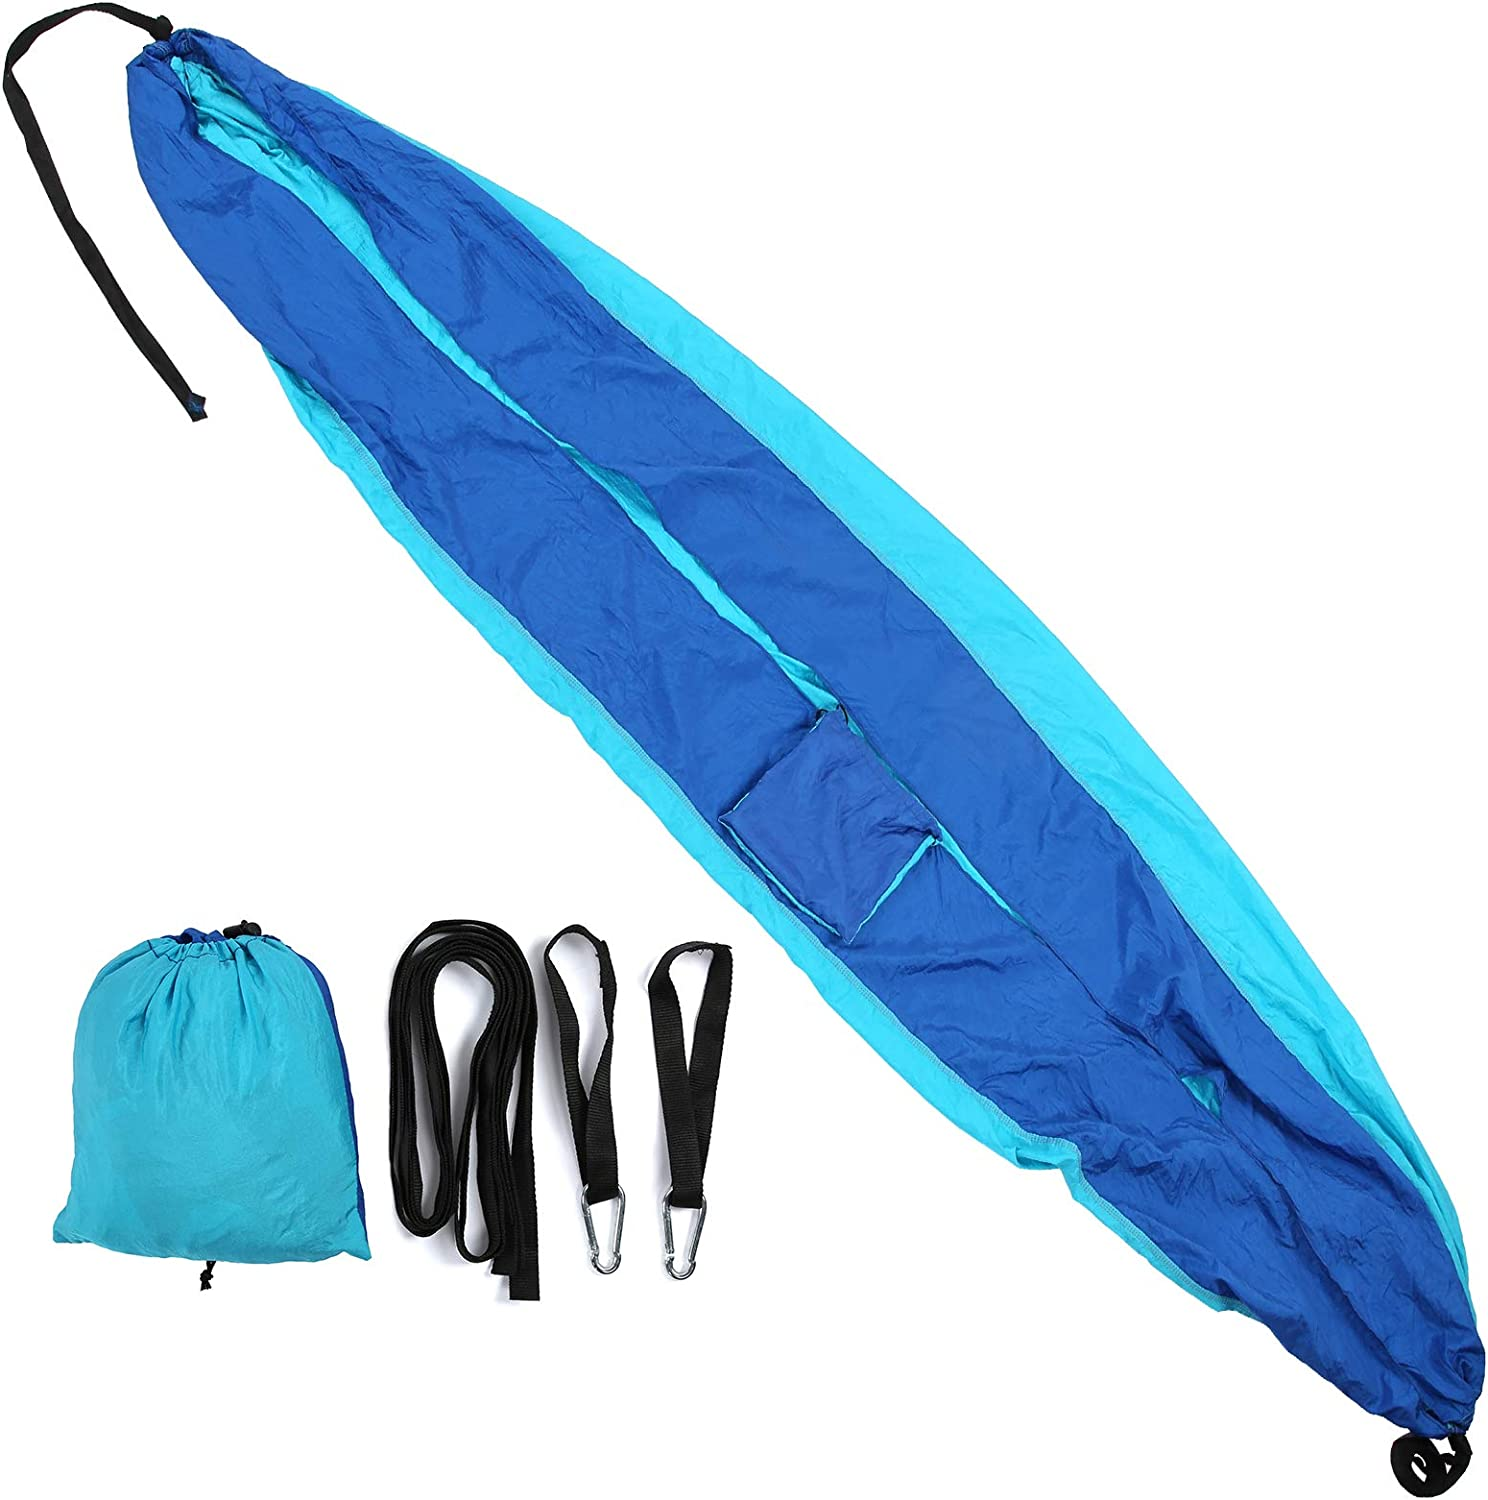 TEANQIkejitop Double Camping Hammock- Lightweight Nylon OFFer Portable Animer and price revision